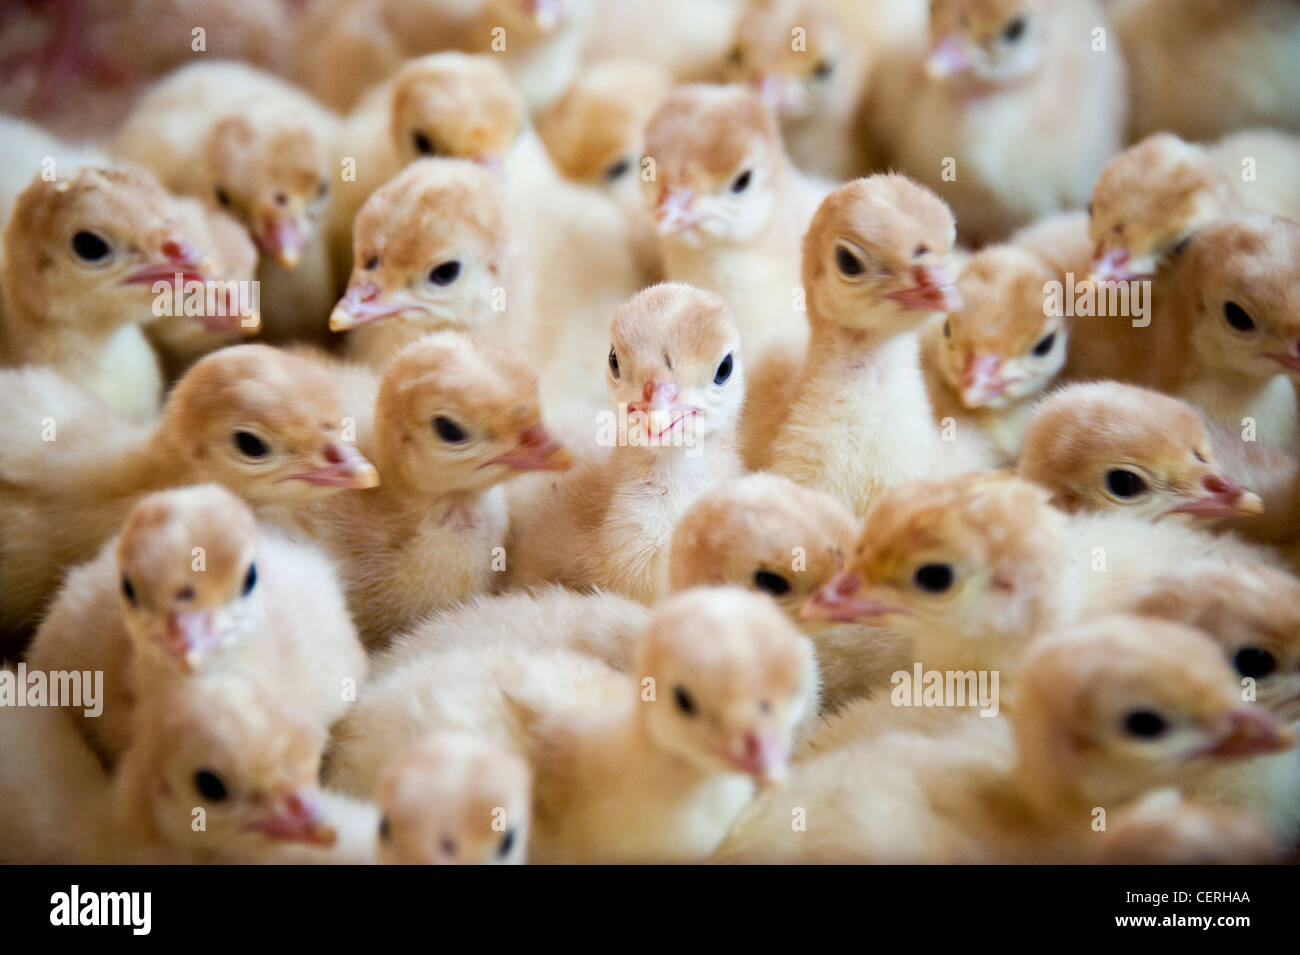 Turkey chicks - Stock Image